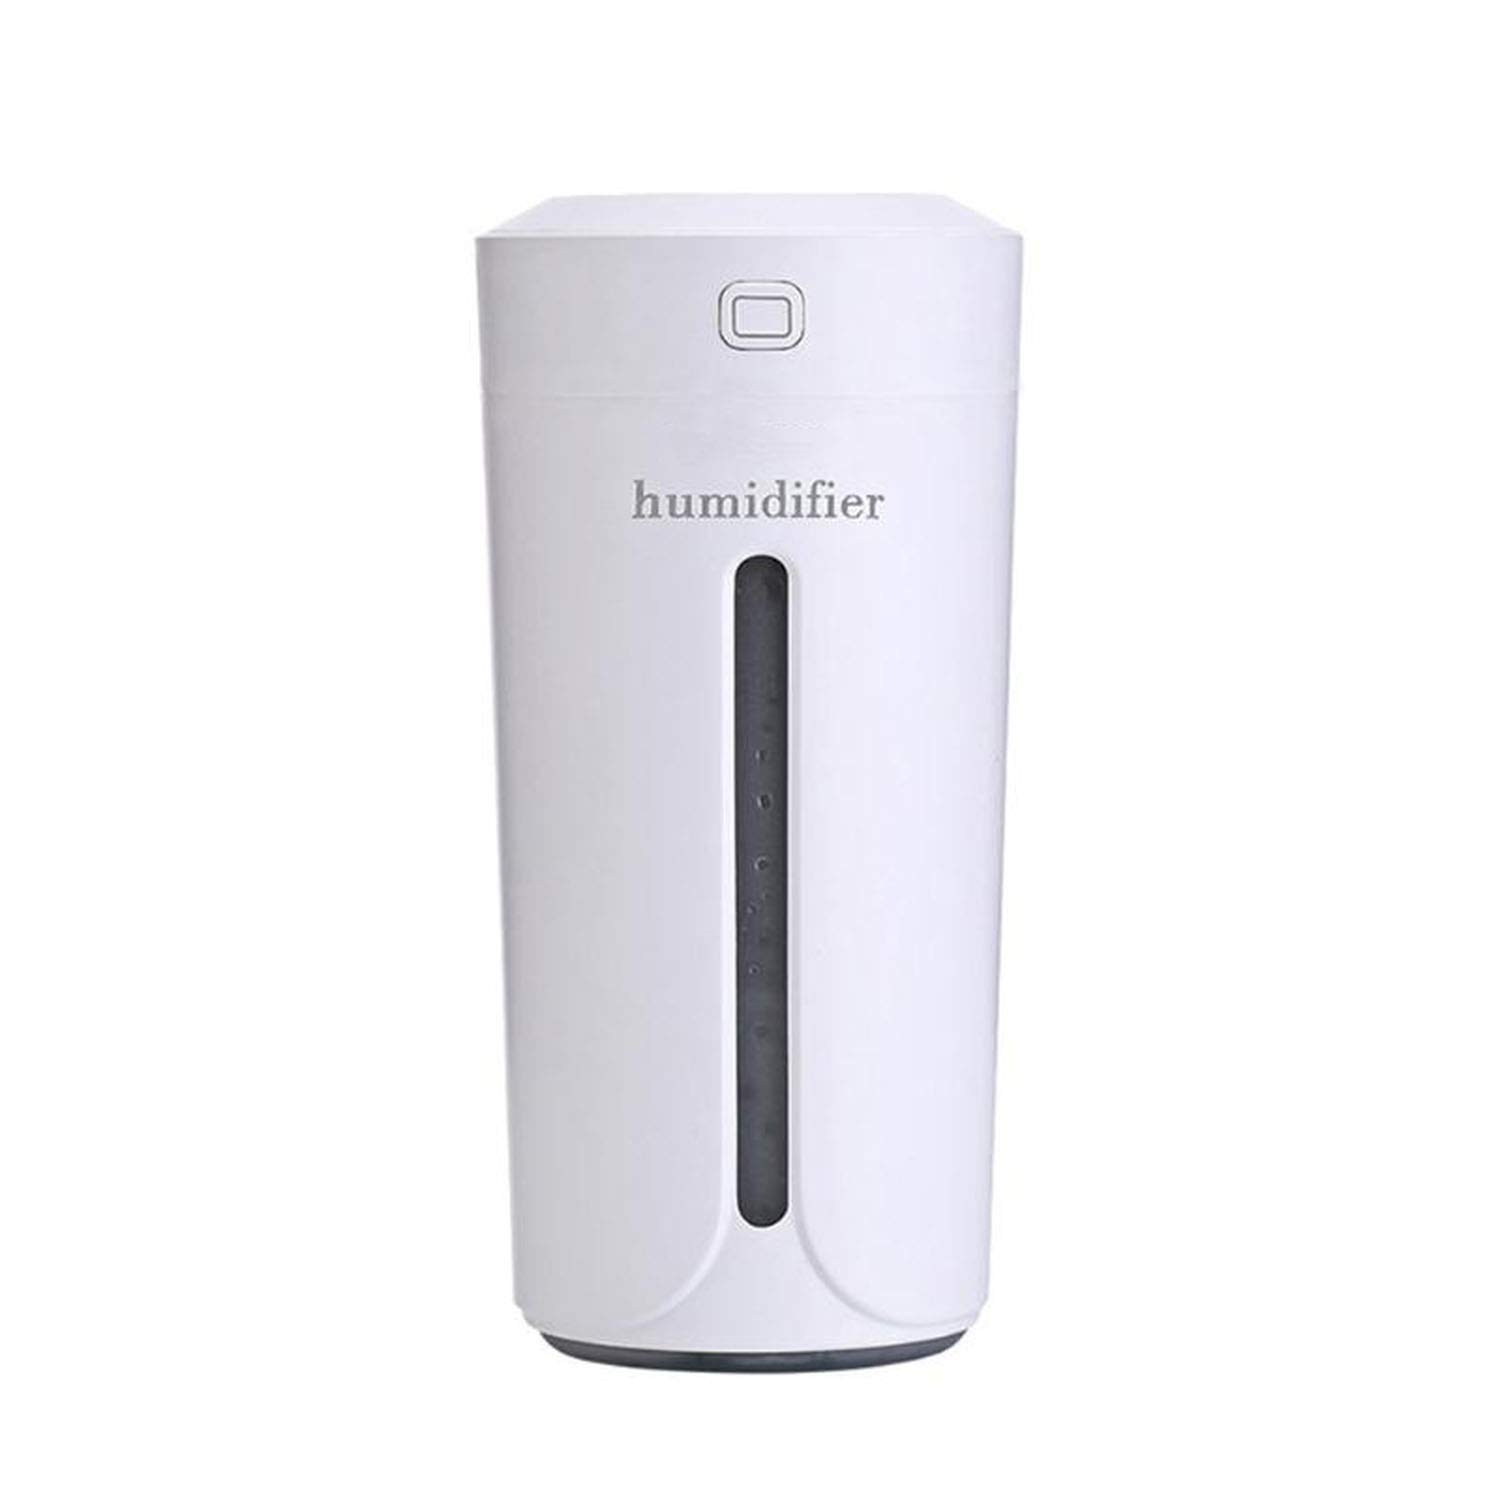 Shallnne 230ml Mini Air Humidifier USB Ultrasonic Humidifier Car Aroma Diffuser Electric Essential Oil Diffuser Cup 7 Color LED Lights,White